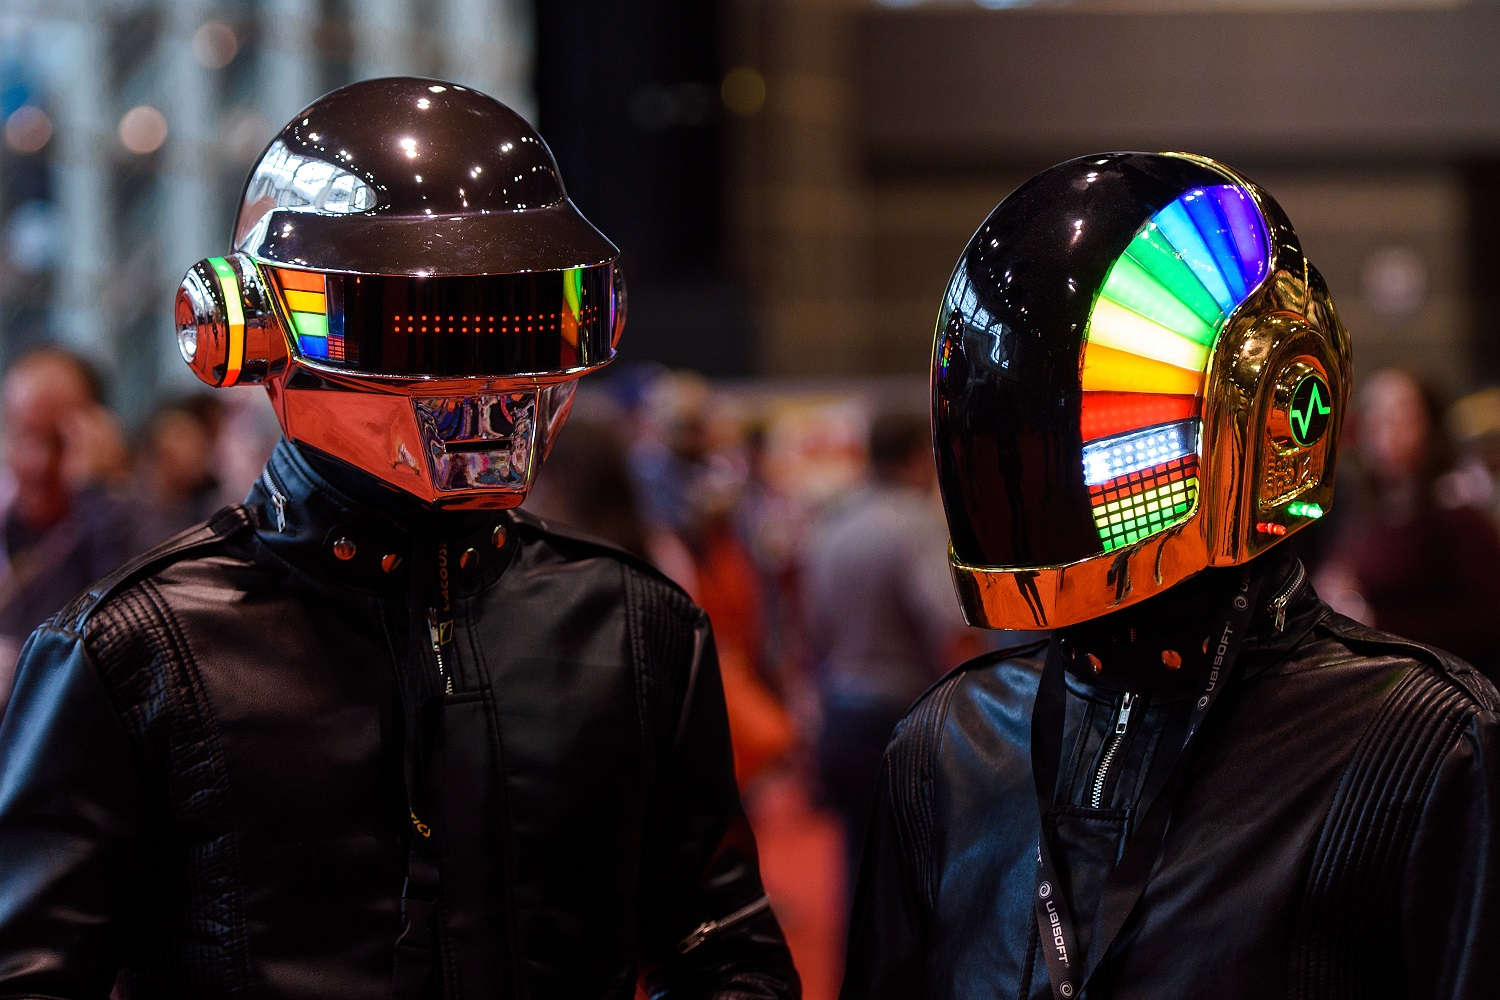 Cosplayers dressed as Daft Punk